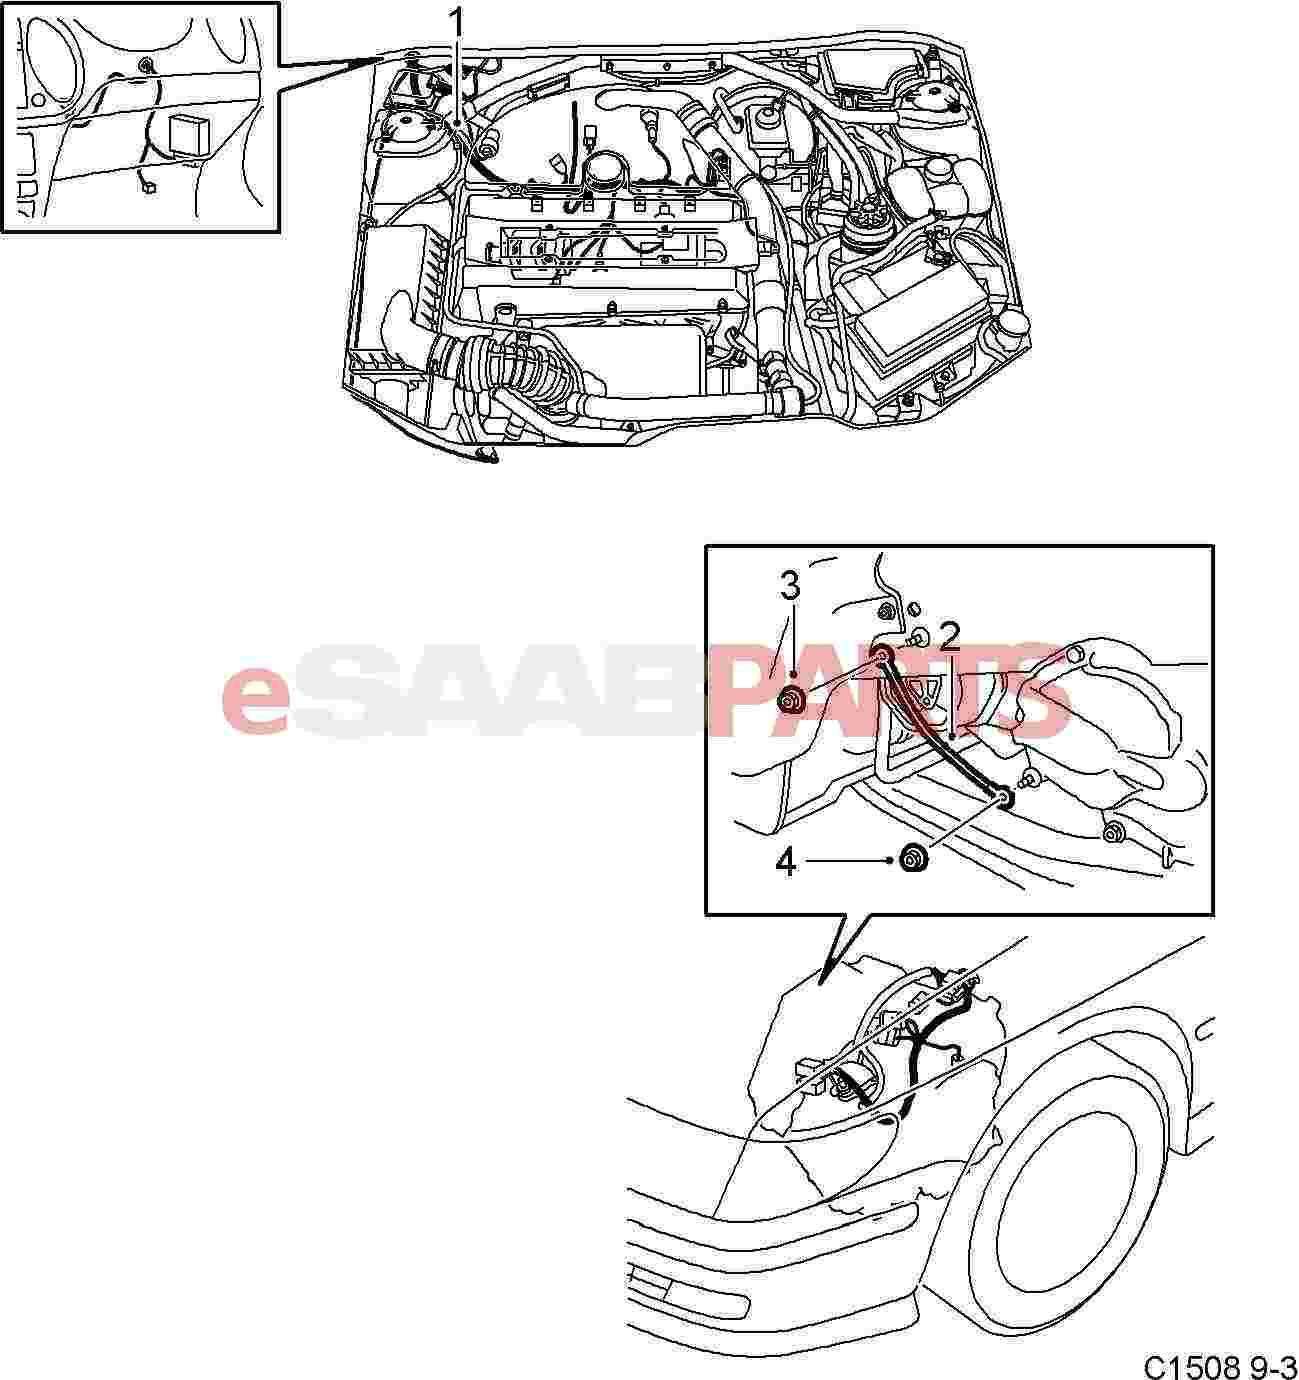 Ej Wiring Diagram Auto Electrical Cobra 50 Atv Subaru Download Diagrams